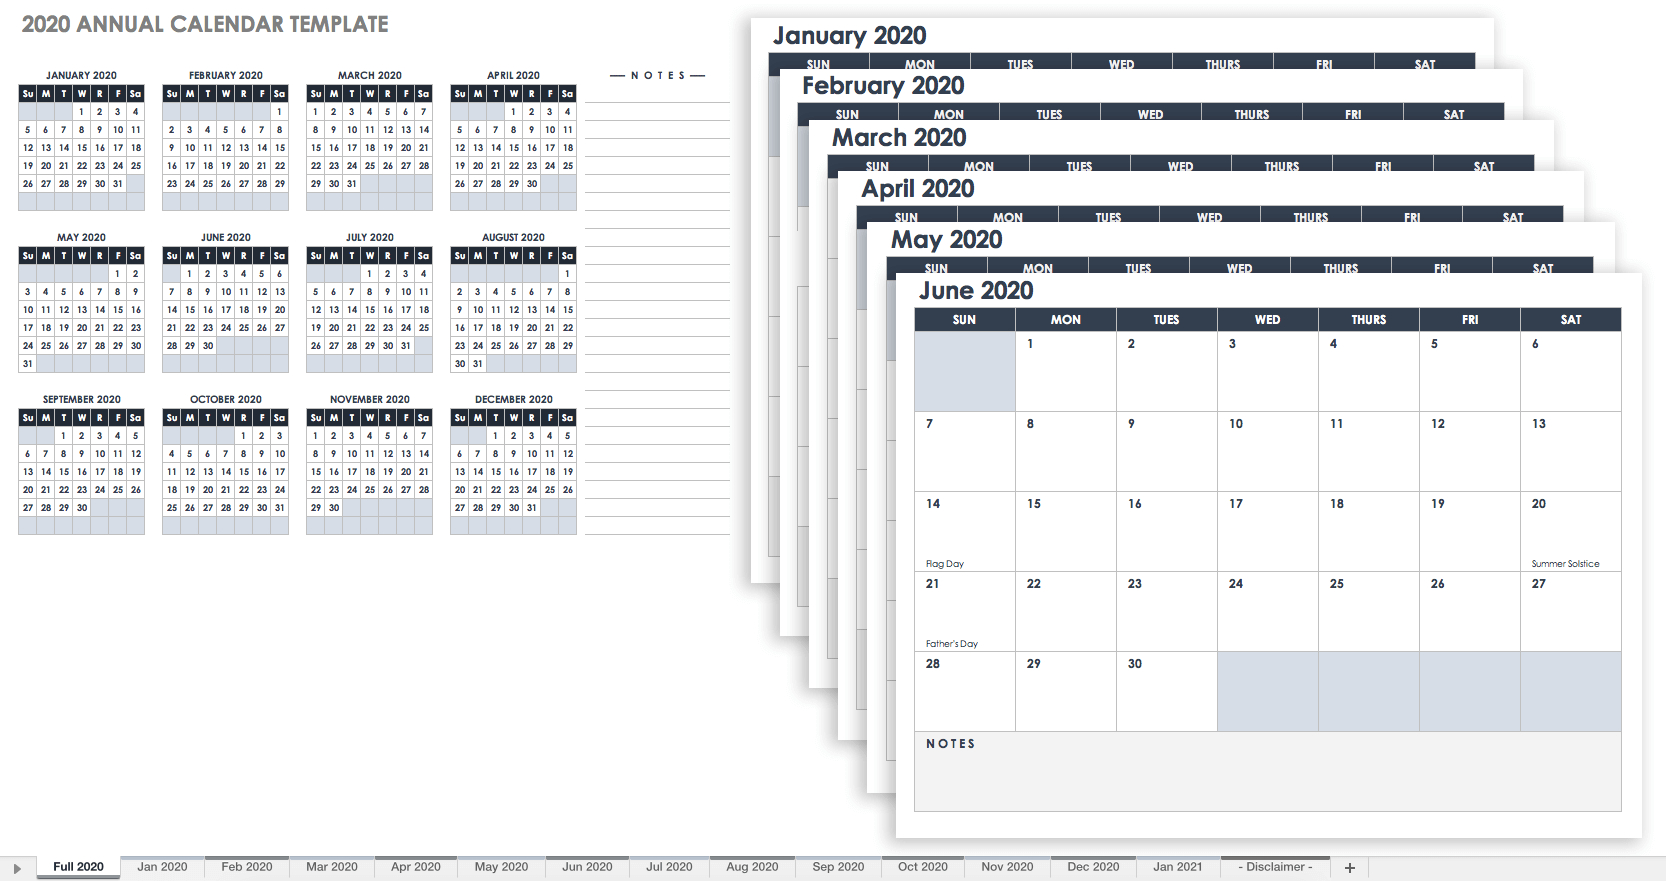 15 Free Monthly Calendar Templates | Smartsheet with Calendar 2020 Printable Calendar Starting With Monday